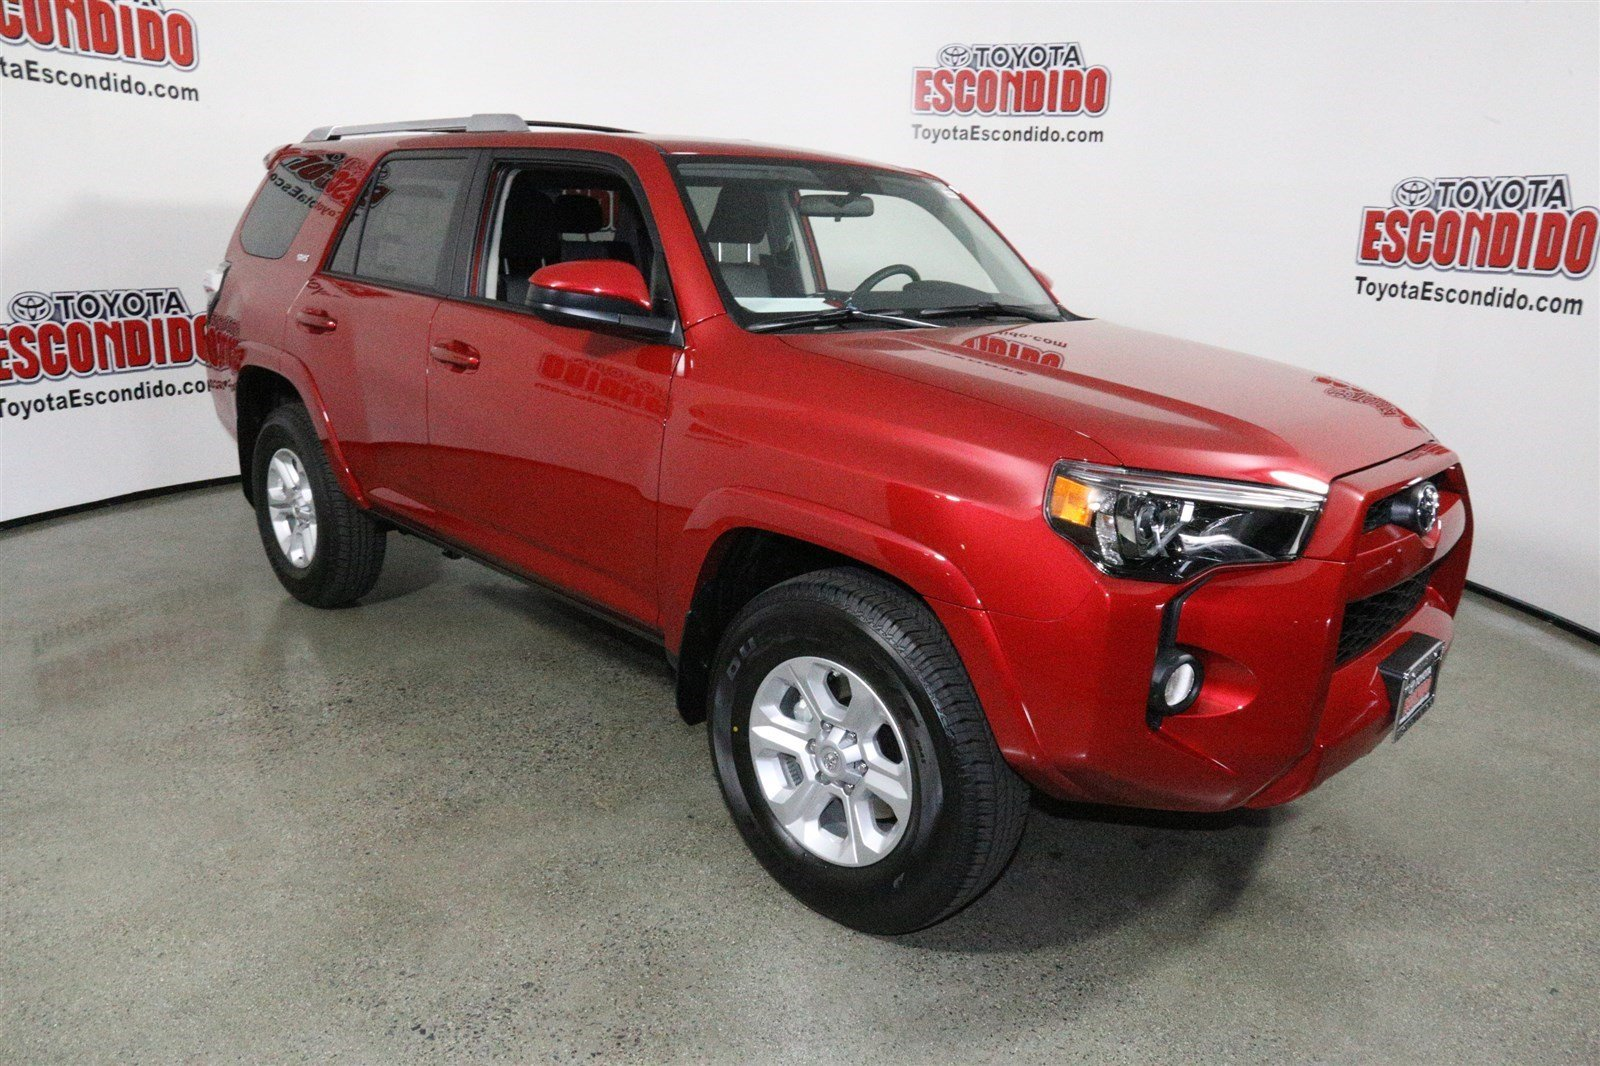 new 2016 toyota 4runner sr5 sport utility in escondido 1014441 toyota of escondido. Black Bedroom Furniture Sets. Home Design Ideas